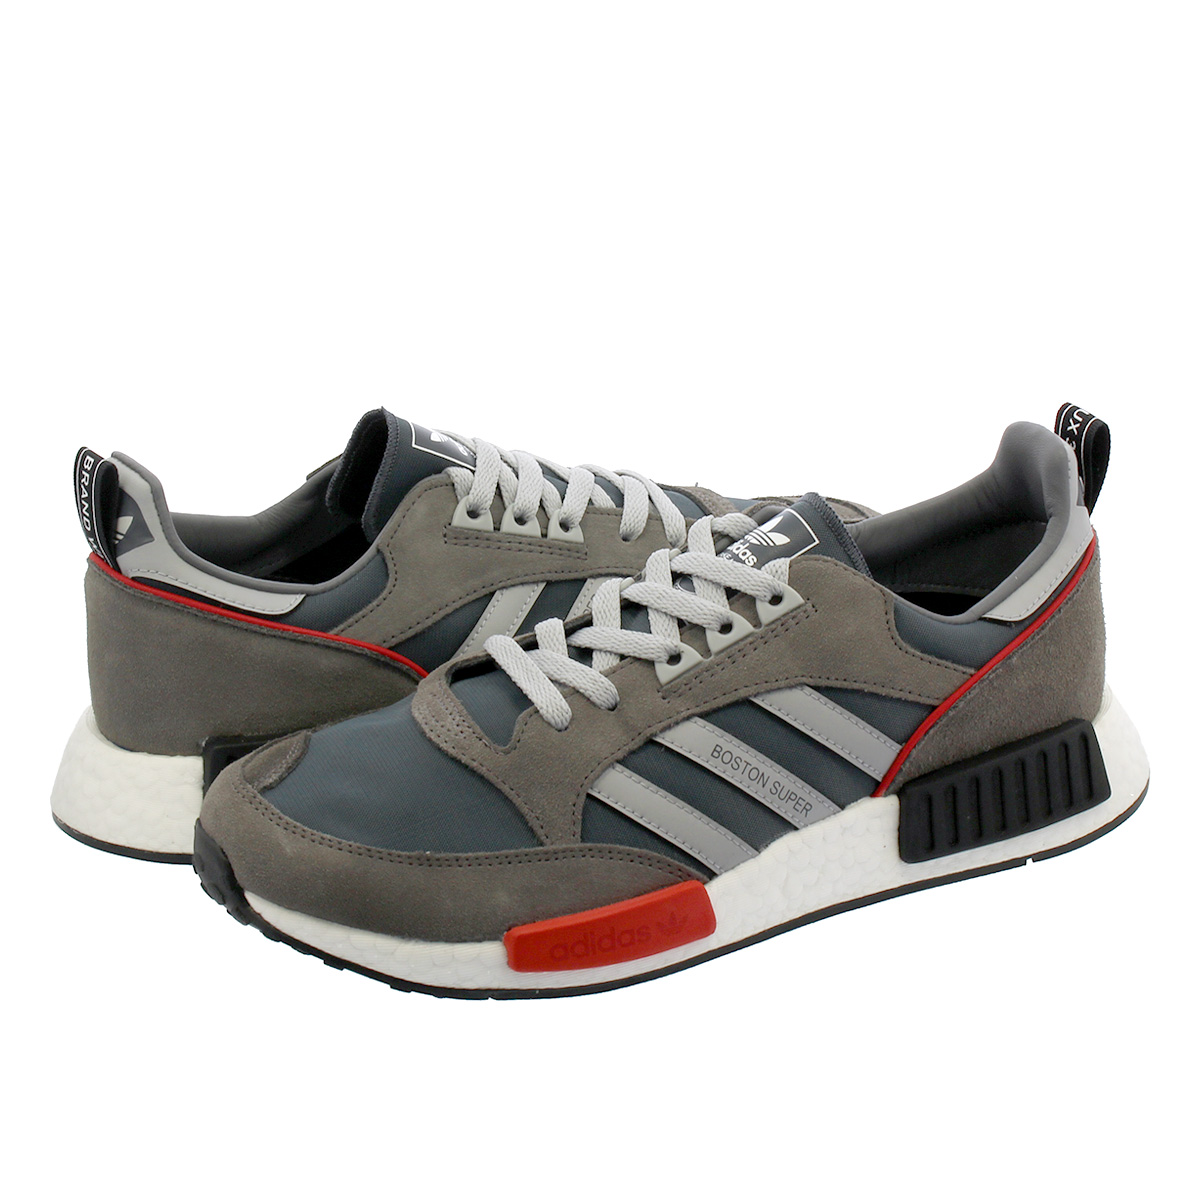 adidas BOSTONSUPER x R1 【Never Made】 【国内店舗限定モデル】 アディダス ボストンスーパー x R1 BOLD ONIX/CLEAR ONIX/RUNNING WHITE g26776